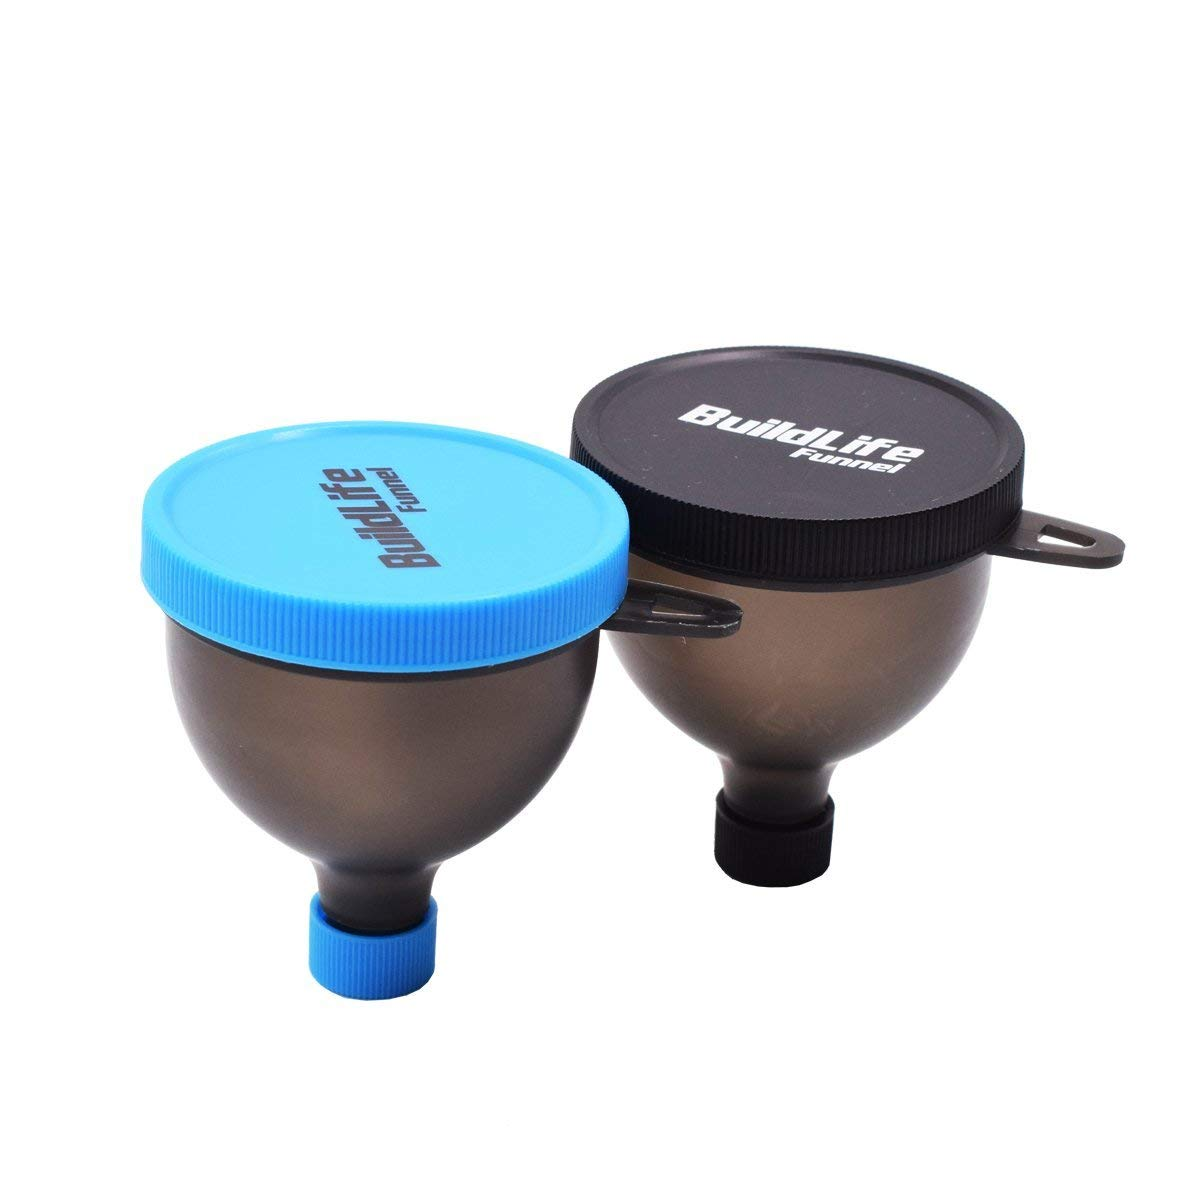 Fill N Go Funnel - Protein Funnel - Supplement Funnel - Water Bottle Funnel - Powder Container for Supplements, Protein Powder